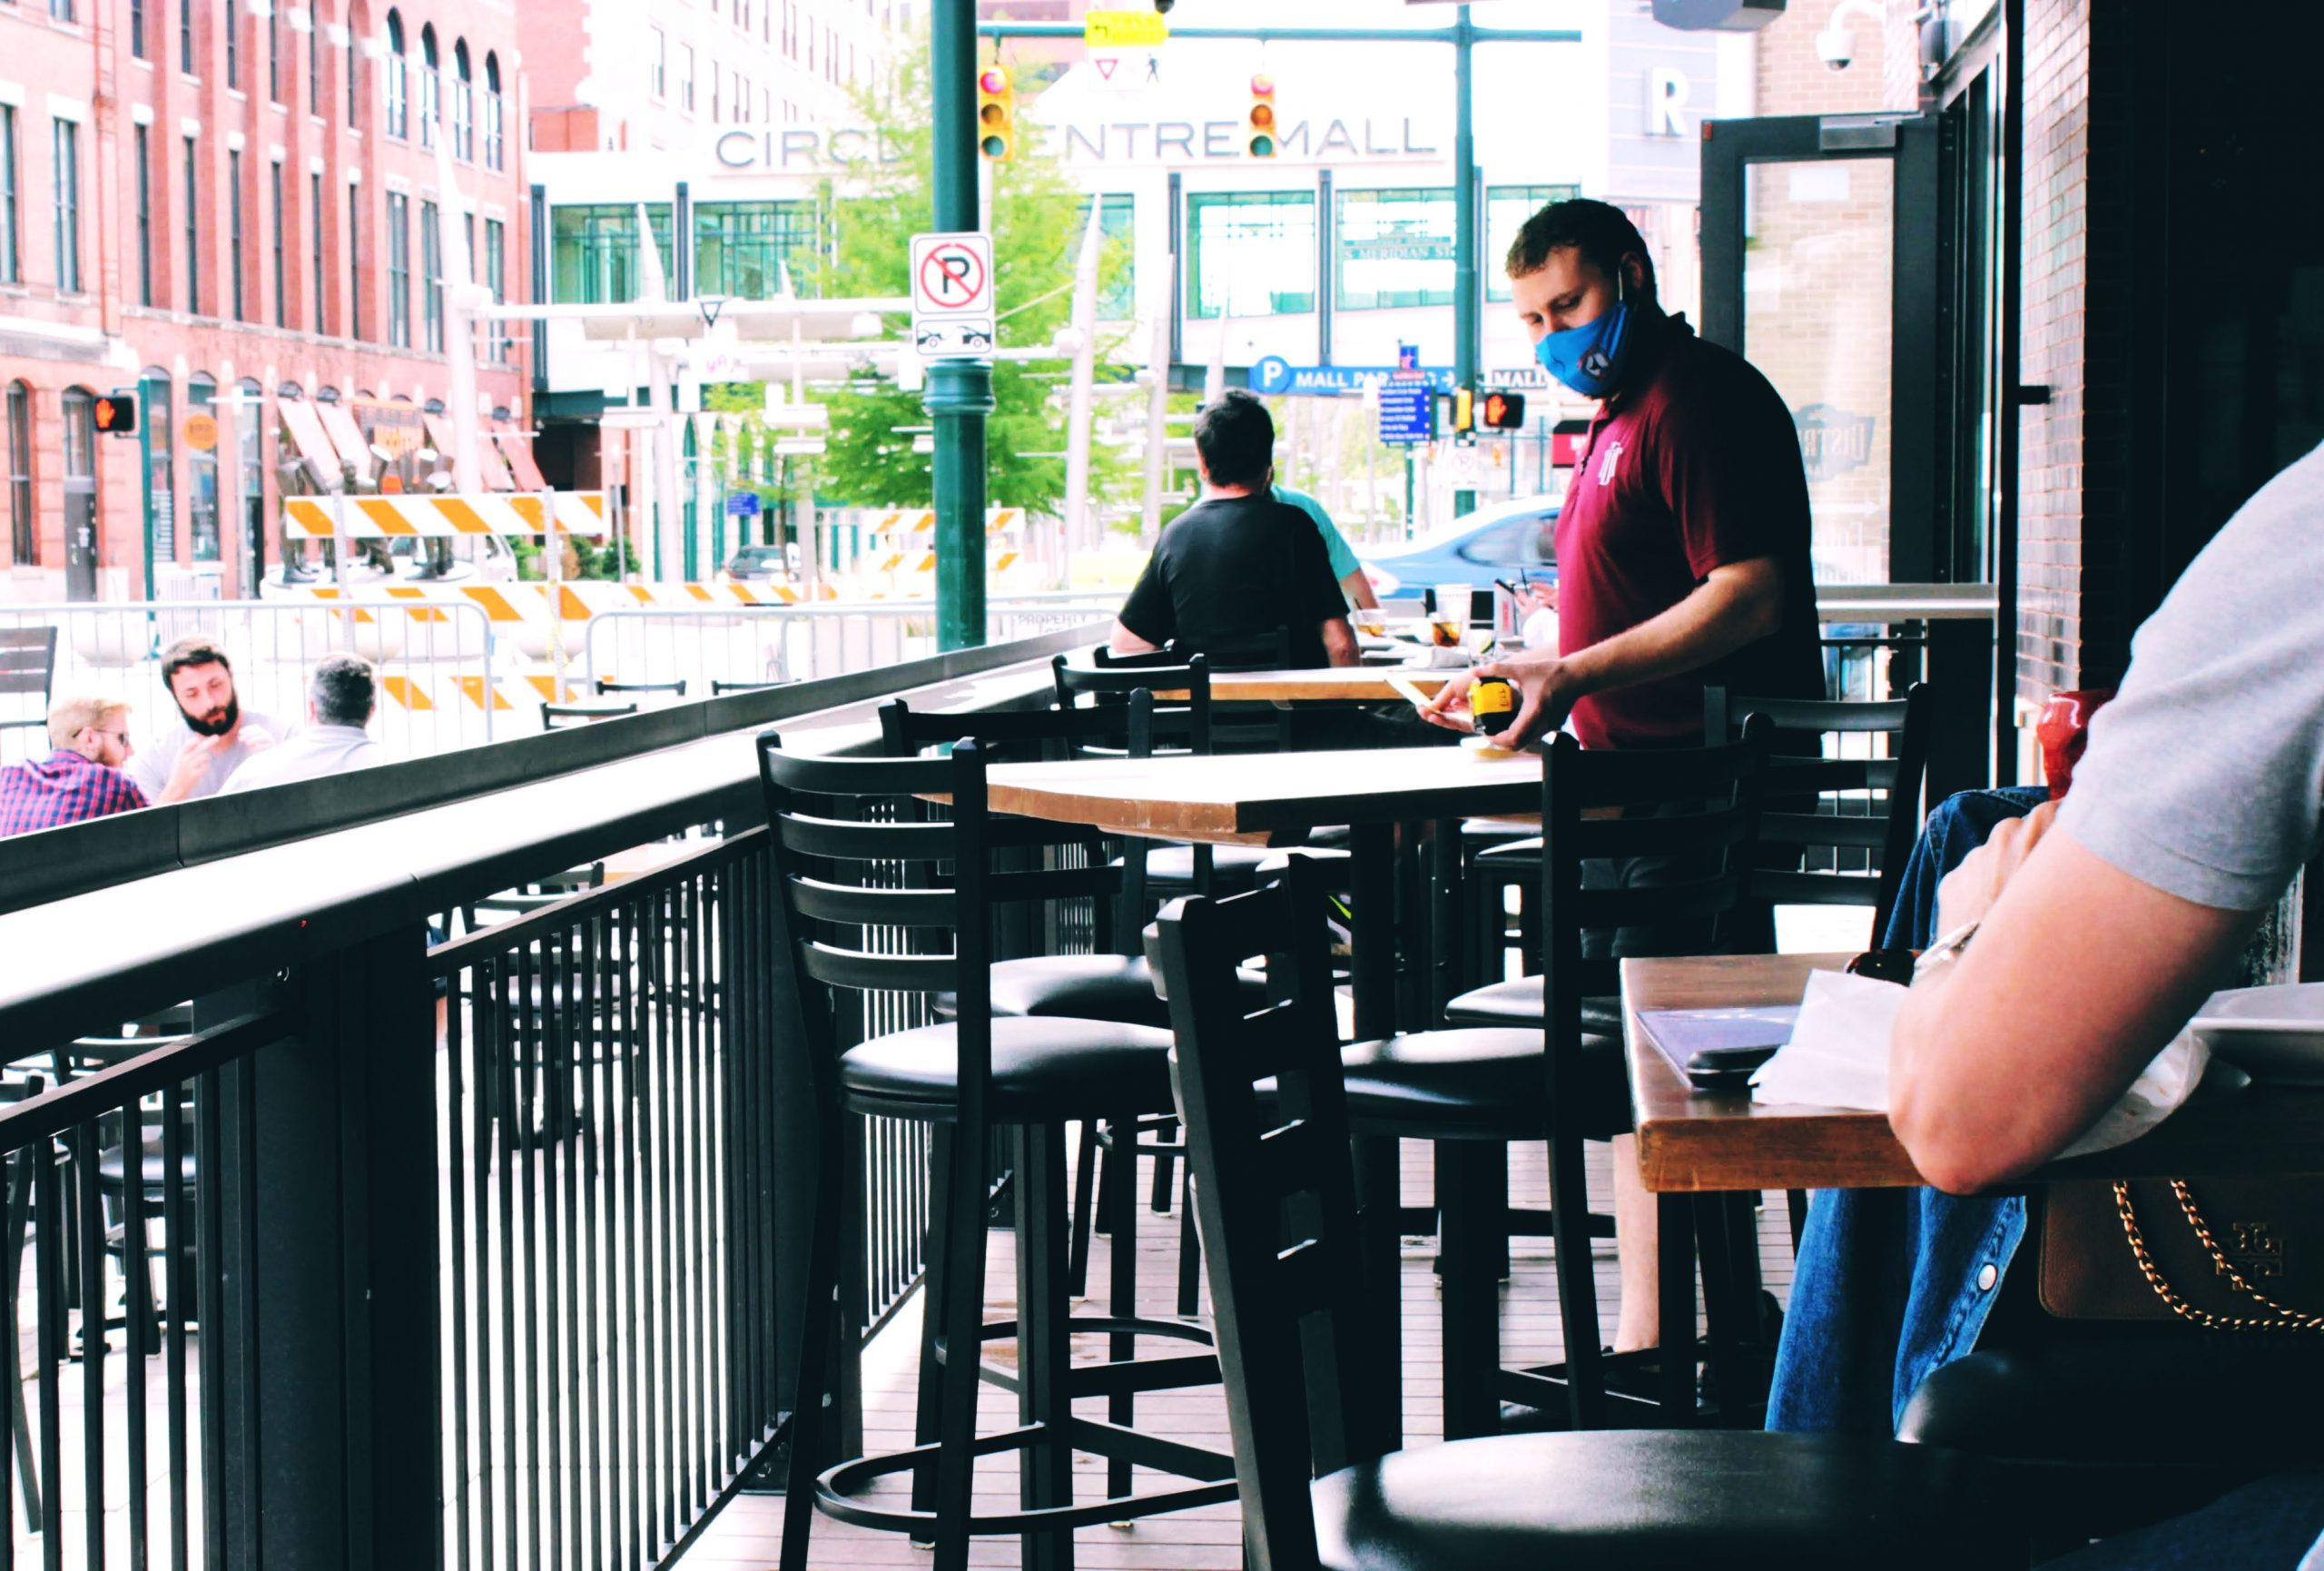 New SpotOn Contact Tracing Software Helps Restaurants and Small Businesses Operate Safely Amid COVID-19 Precautions